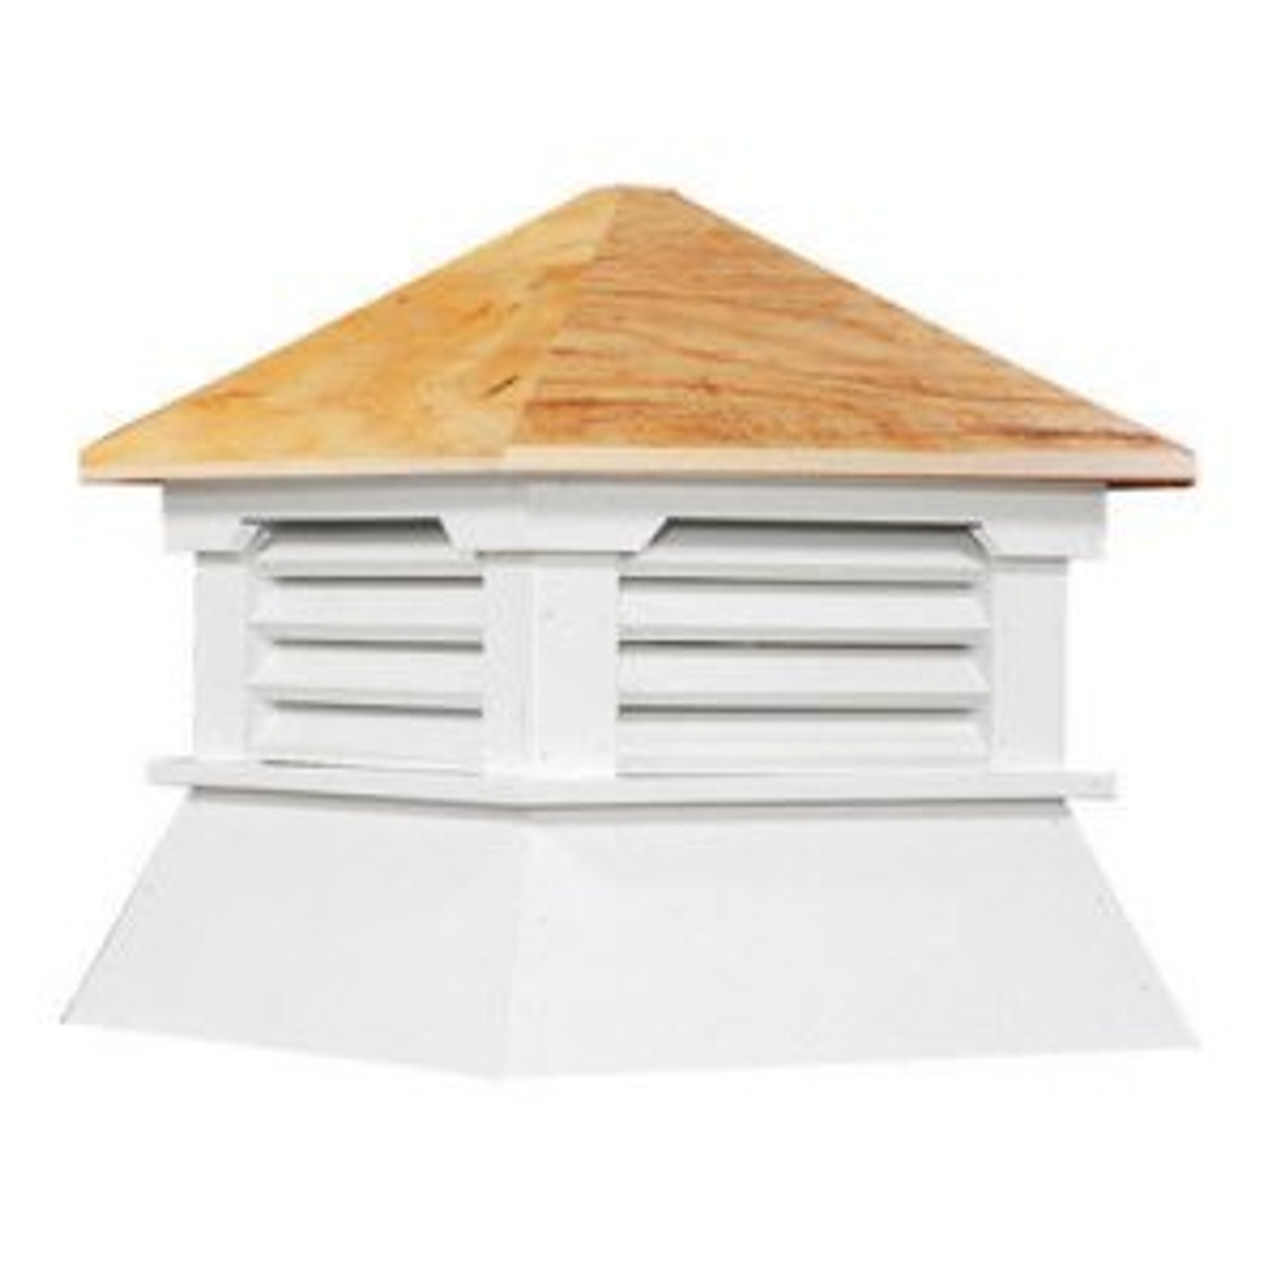 Cupola - Classic Shed: Azek - Plywood Top - 16Lx16Wx18H